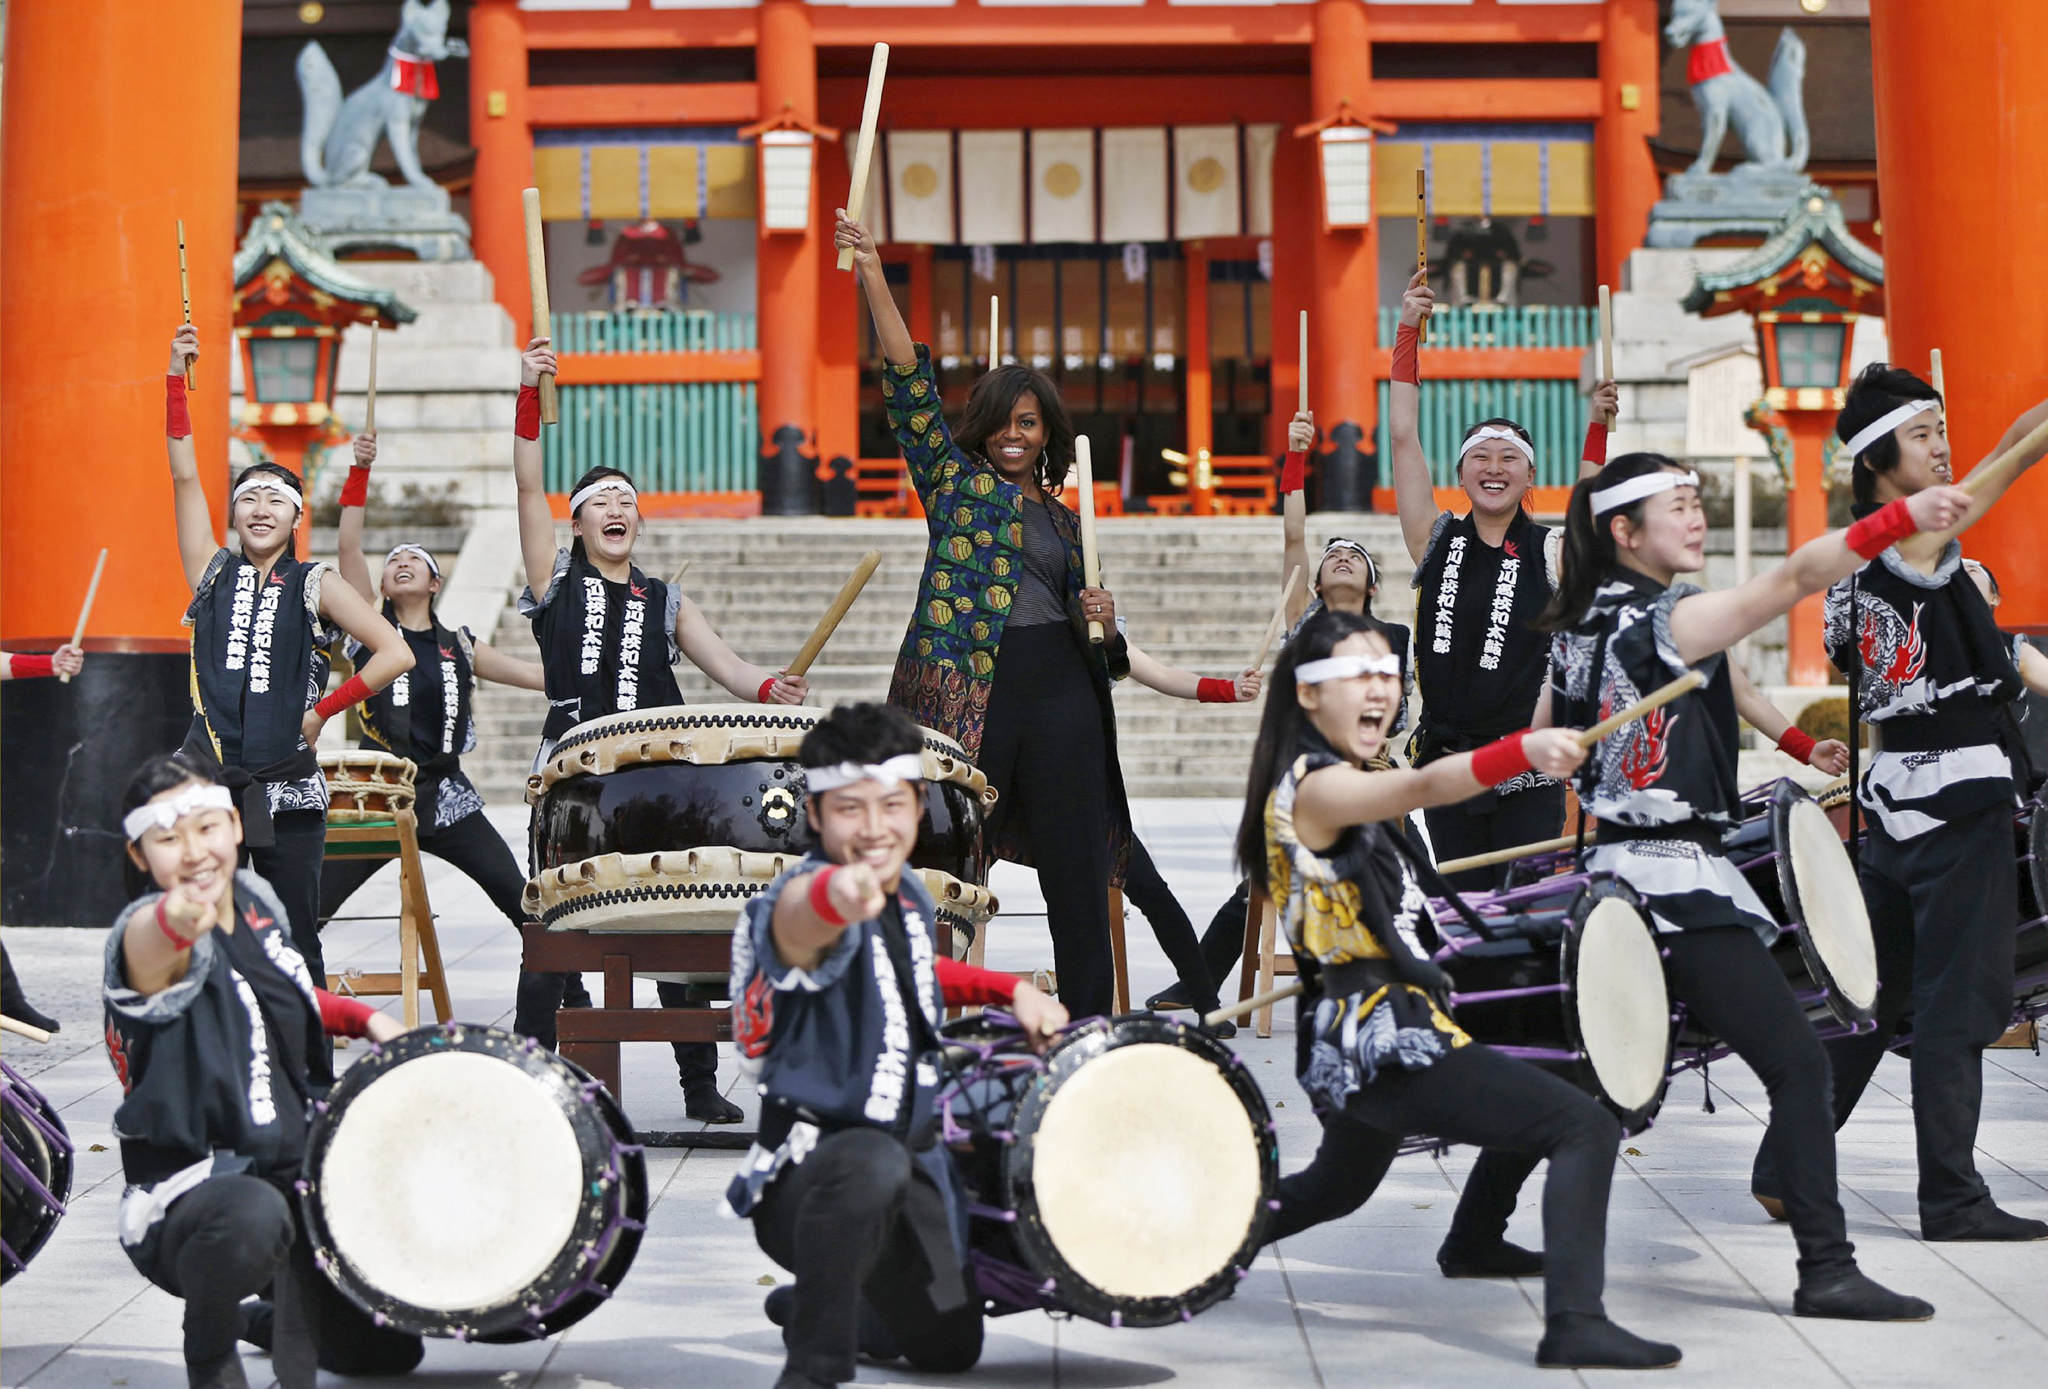 "U.S. first lady Michelle Obama beats a Japanese traditional taiko drum with members from Akutagawa High School Taiko Club in front of the main gate, as she visits Fushimi Inari Shinto Shrine in Kyoto, western Japan March 20, 2015.  REUTERS/Issei Kato            TPX IMAGES OF THE DAY REUTERS NEWS PICTURES HAS NOW MADE IT EASIER TO FIND THE BEST PHOTOS FROM THE MOST IMPORTANT STORIES AND TOP STANDALONES EACH DAY. Search for ""TPX"" in the IPTC Supplemental Category field or ""IMAGES OF THE DAY"" in the Caption field and you will find a selection of 80-100 of our daily Top Pictures."